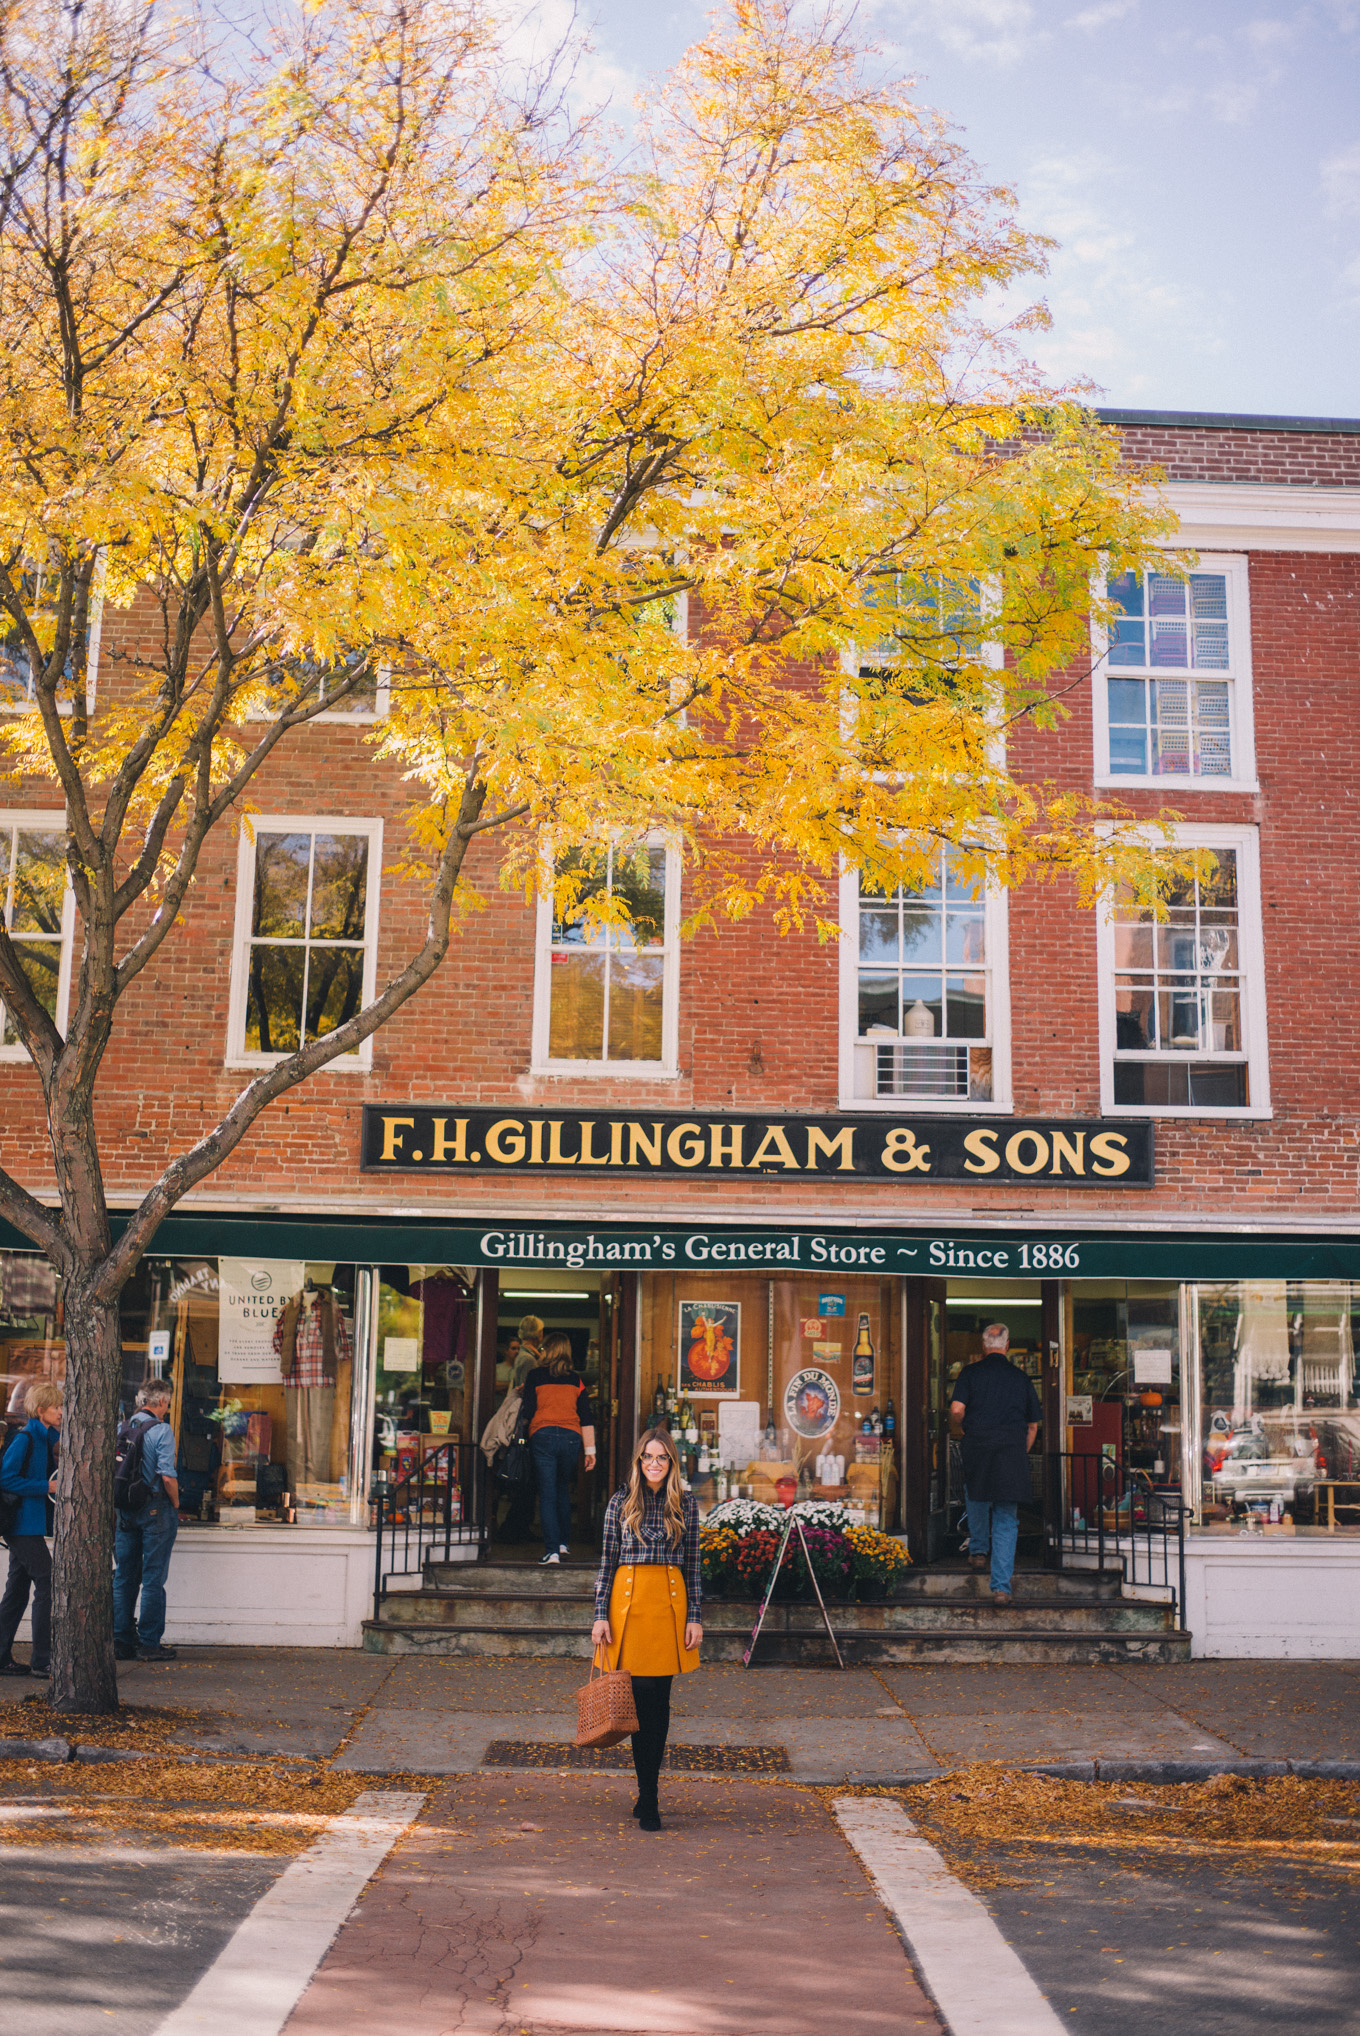 gmg-woodstock-vermont-fall-1002937